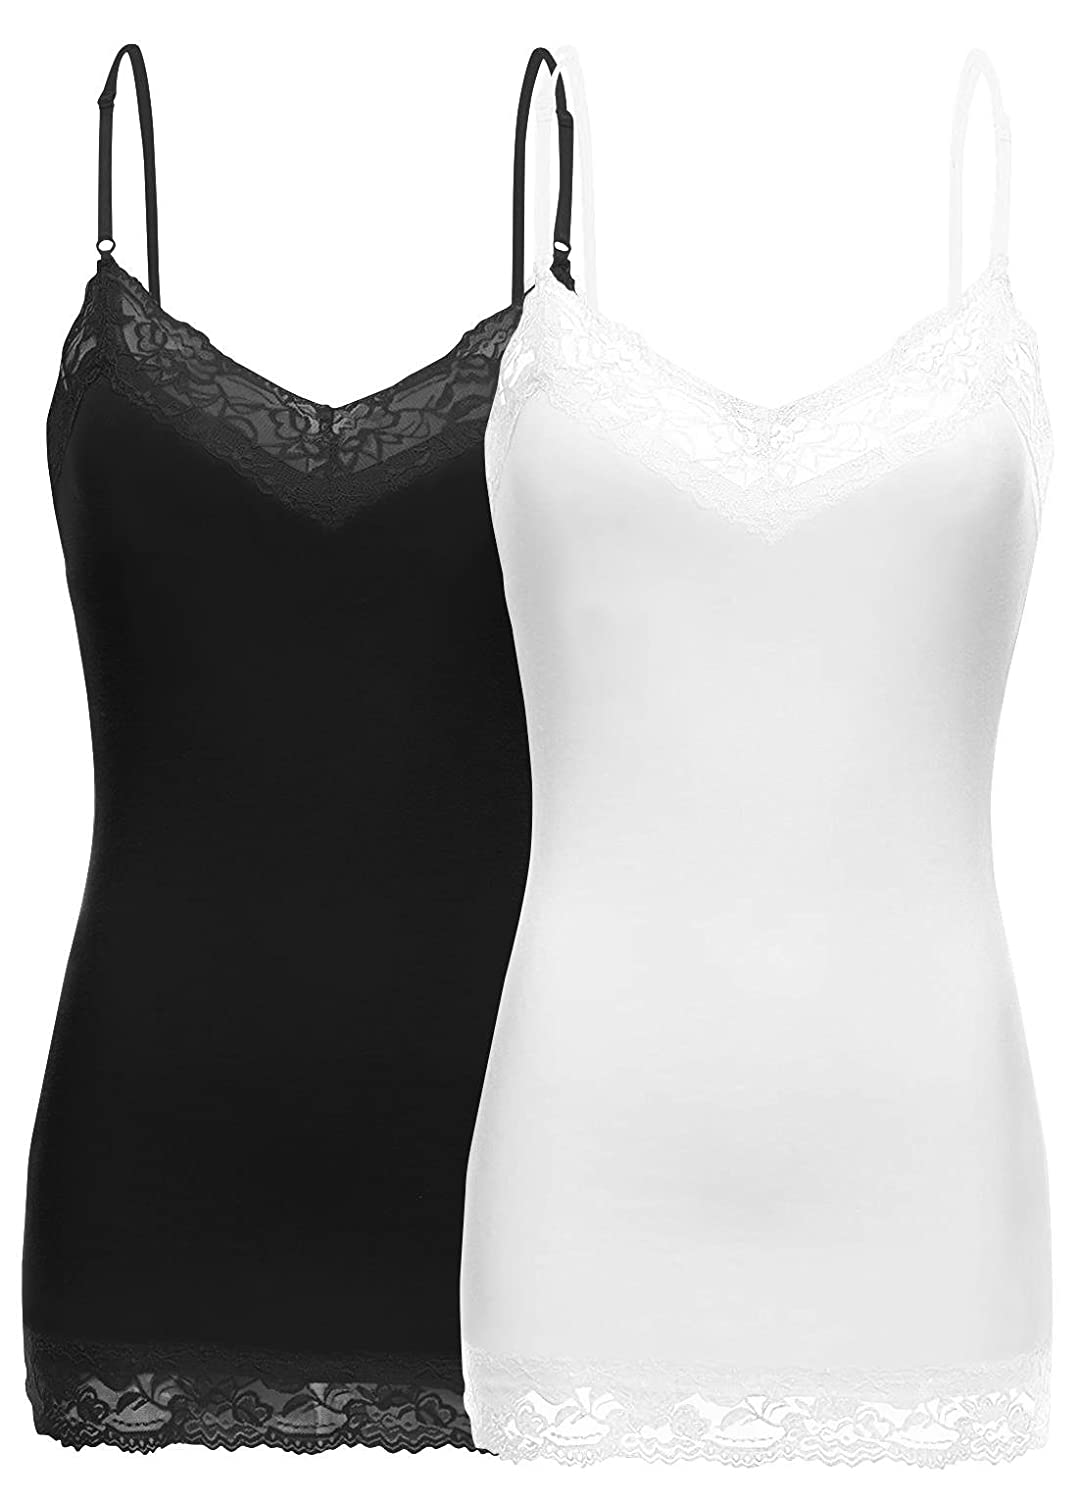 e632457e7358aa DURABLE AND COMFORTABLE - Our lace tank tops for women are loved by all for  their comfort and style. Style 301 is composed of 95% cotton